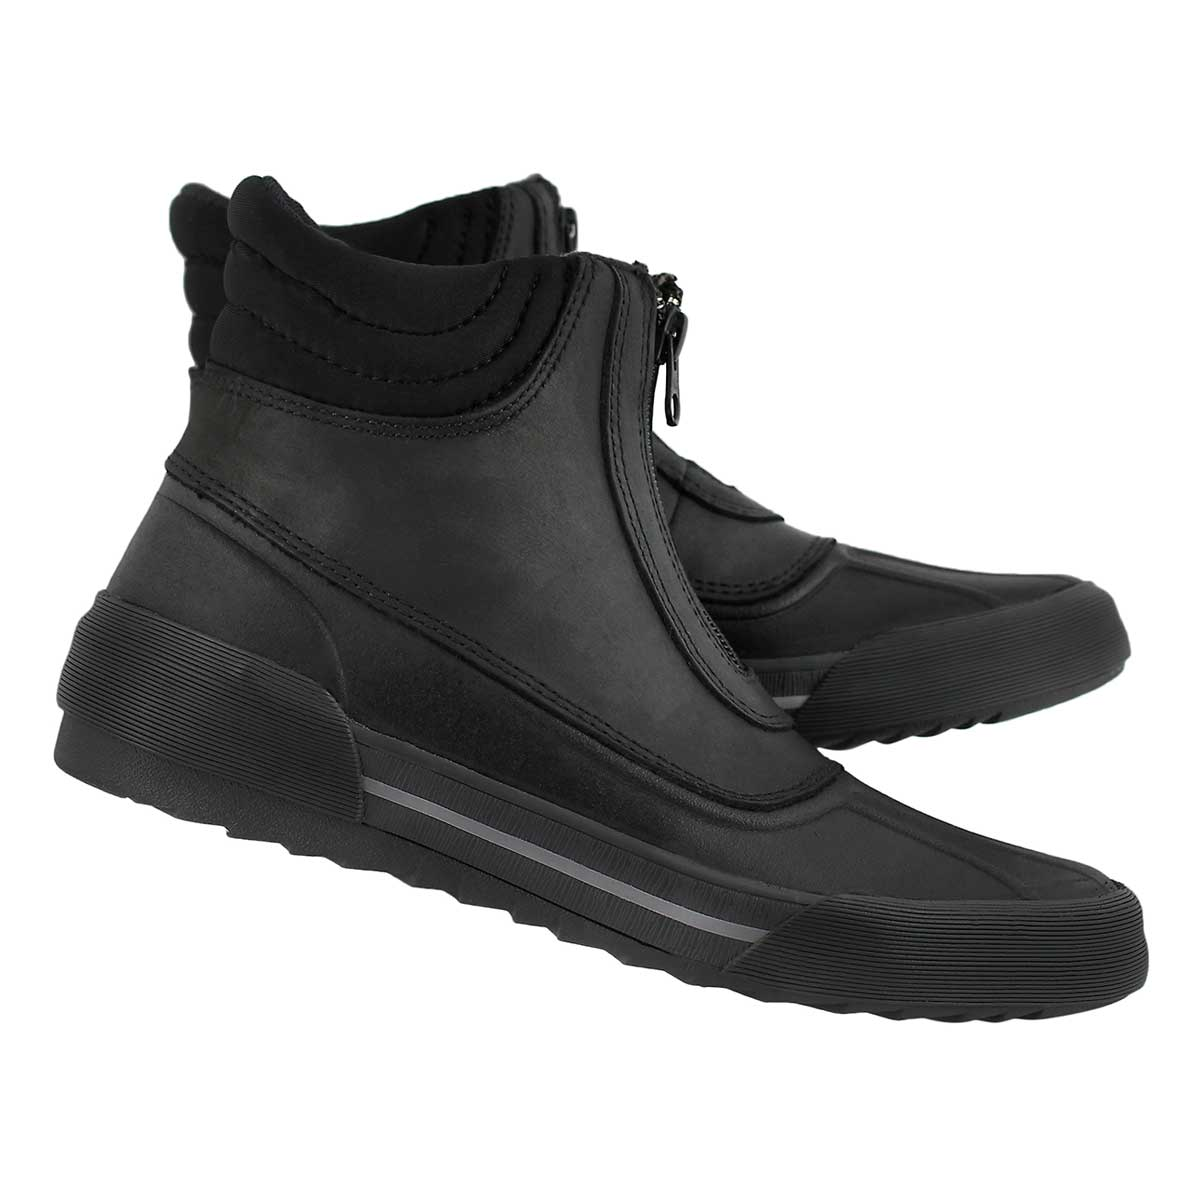 Mns Bowman Top blk wtpf leather muckers